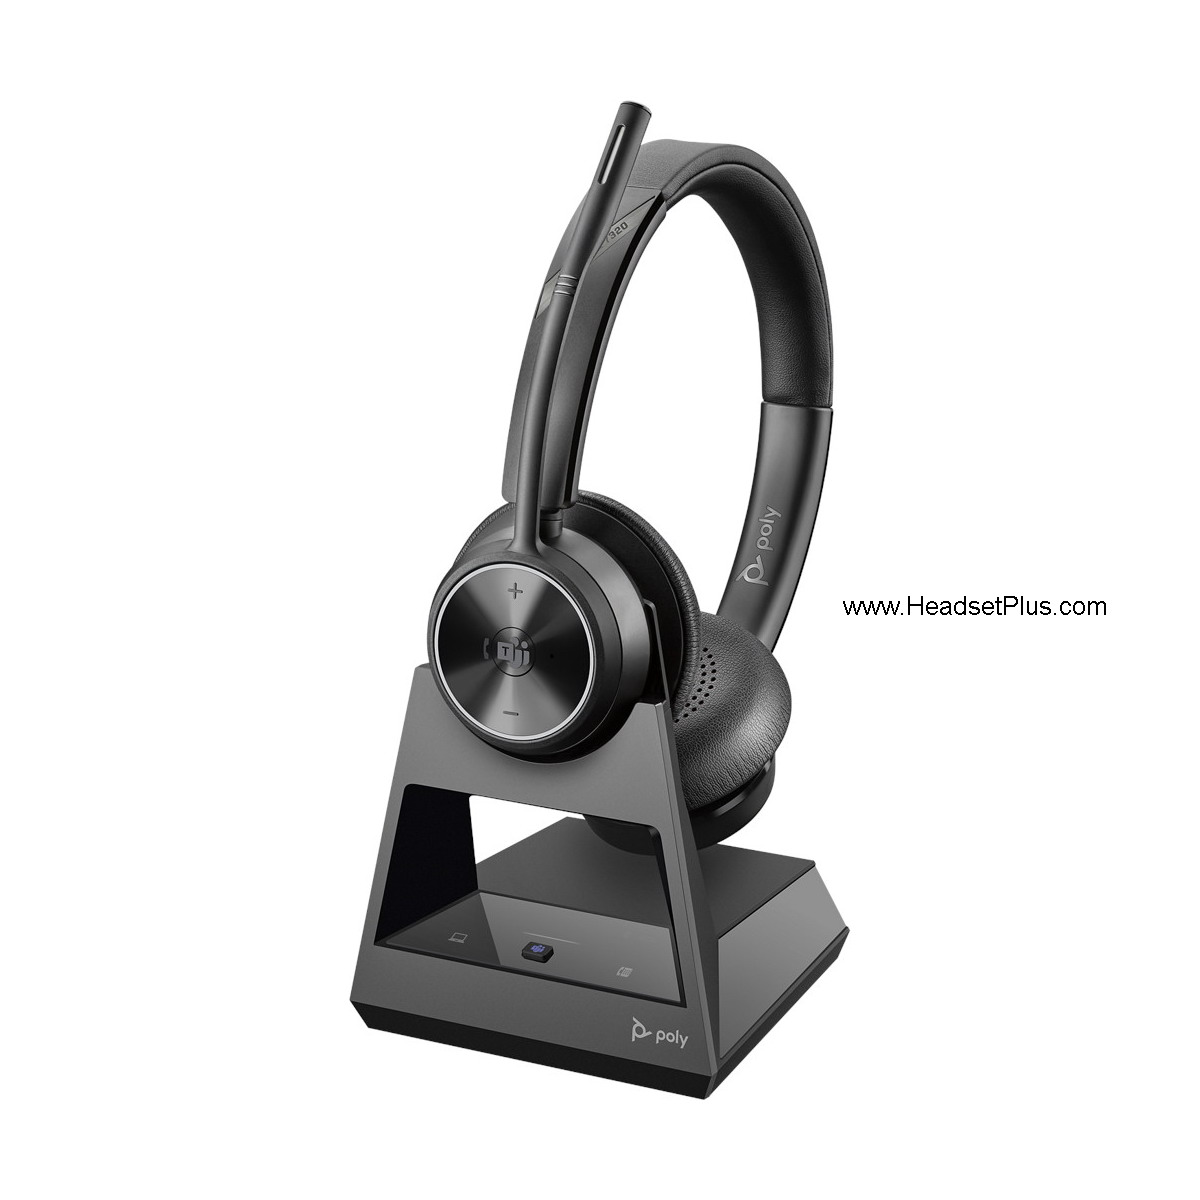 Poly Savi 7320 Office Stereo Wireless Headset, deskphone and PC